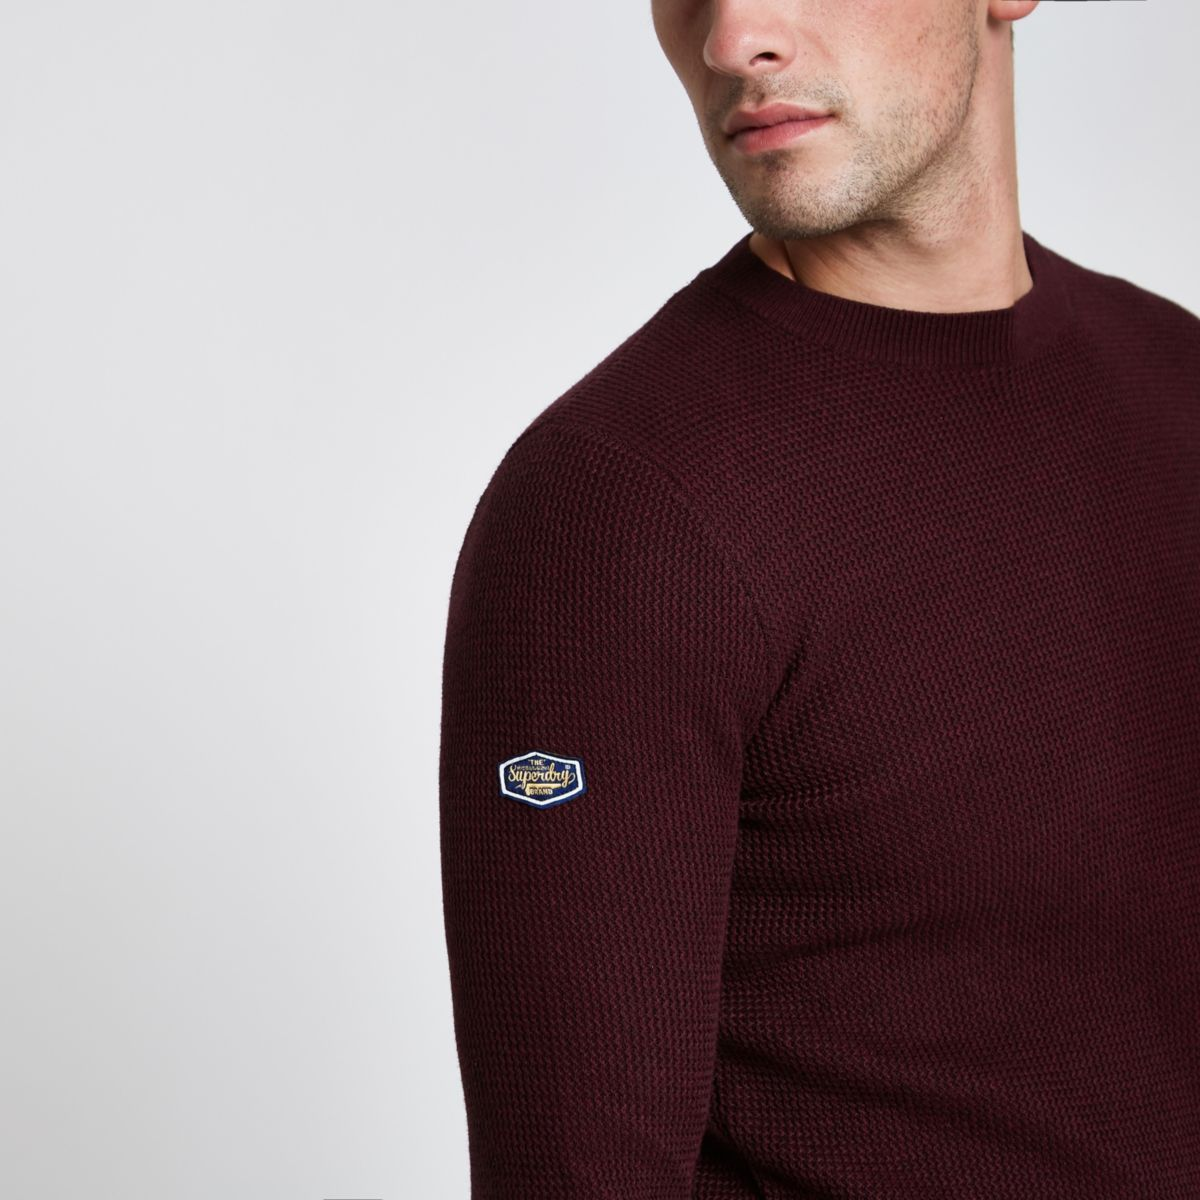 Superdry burgundy textured sweater